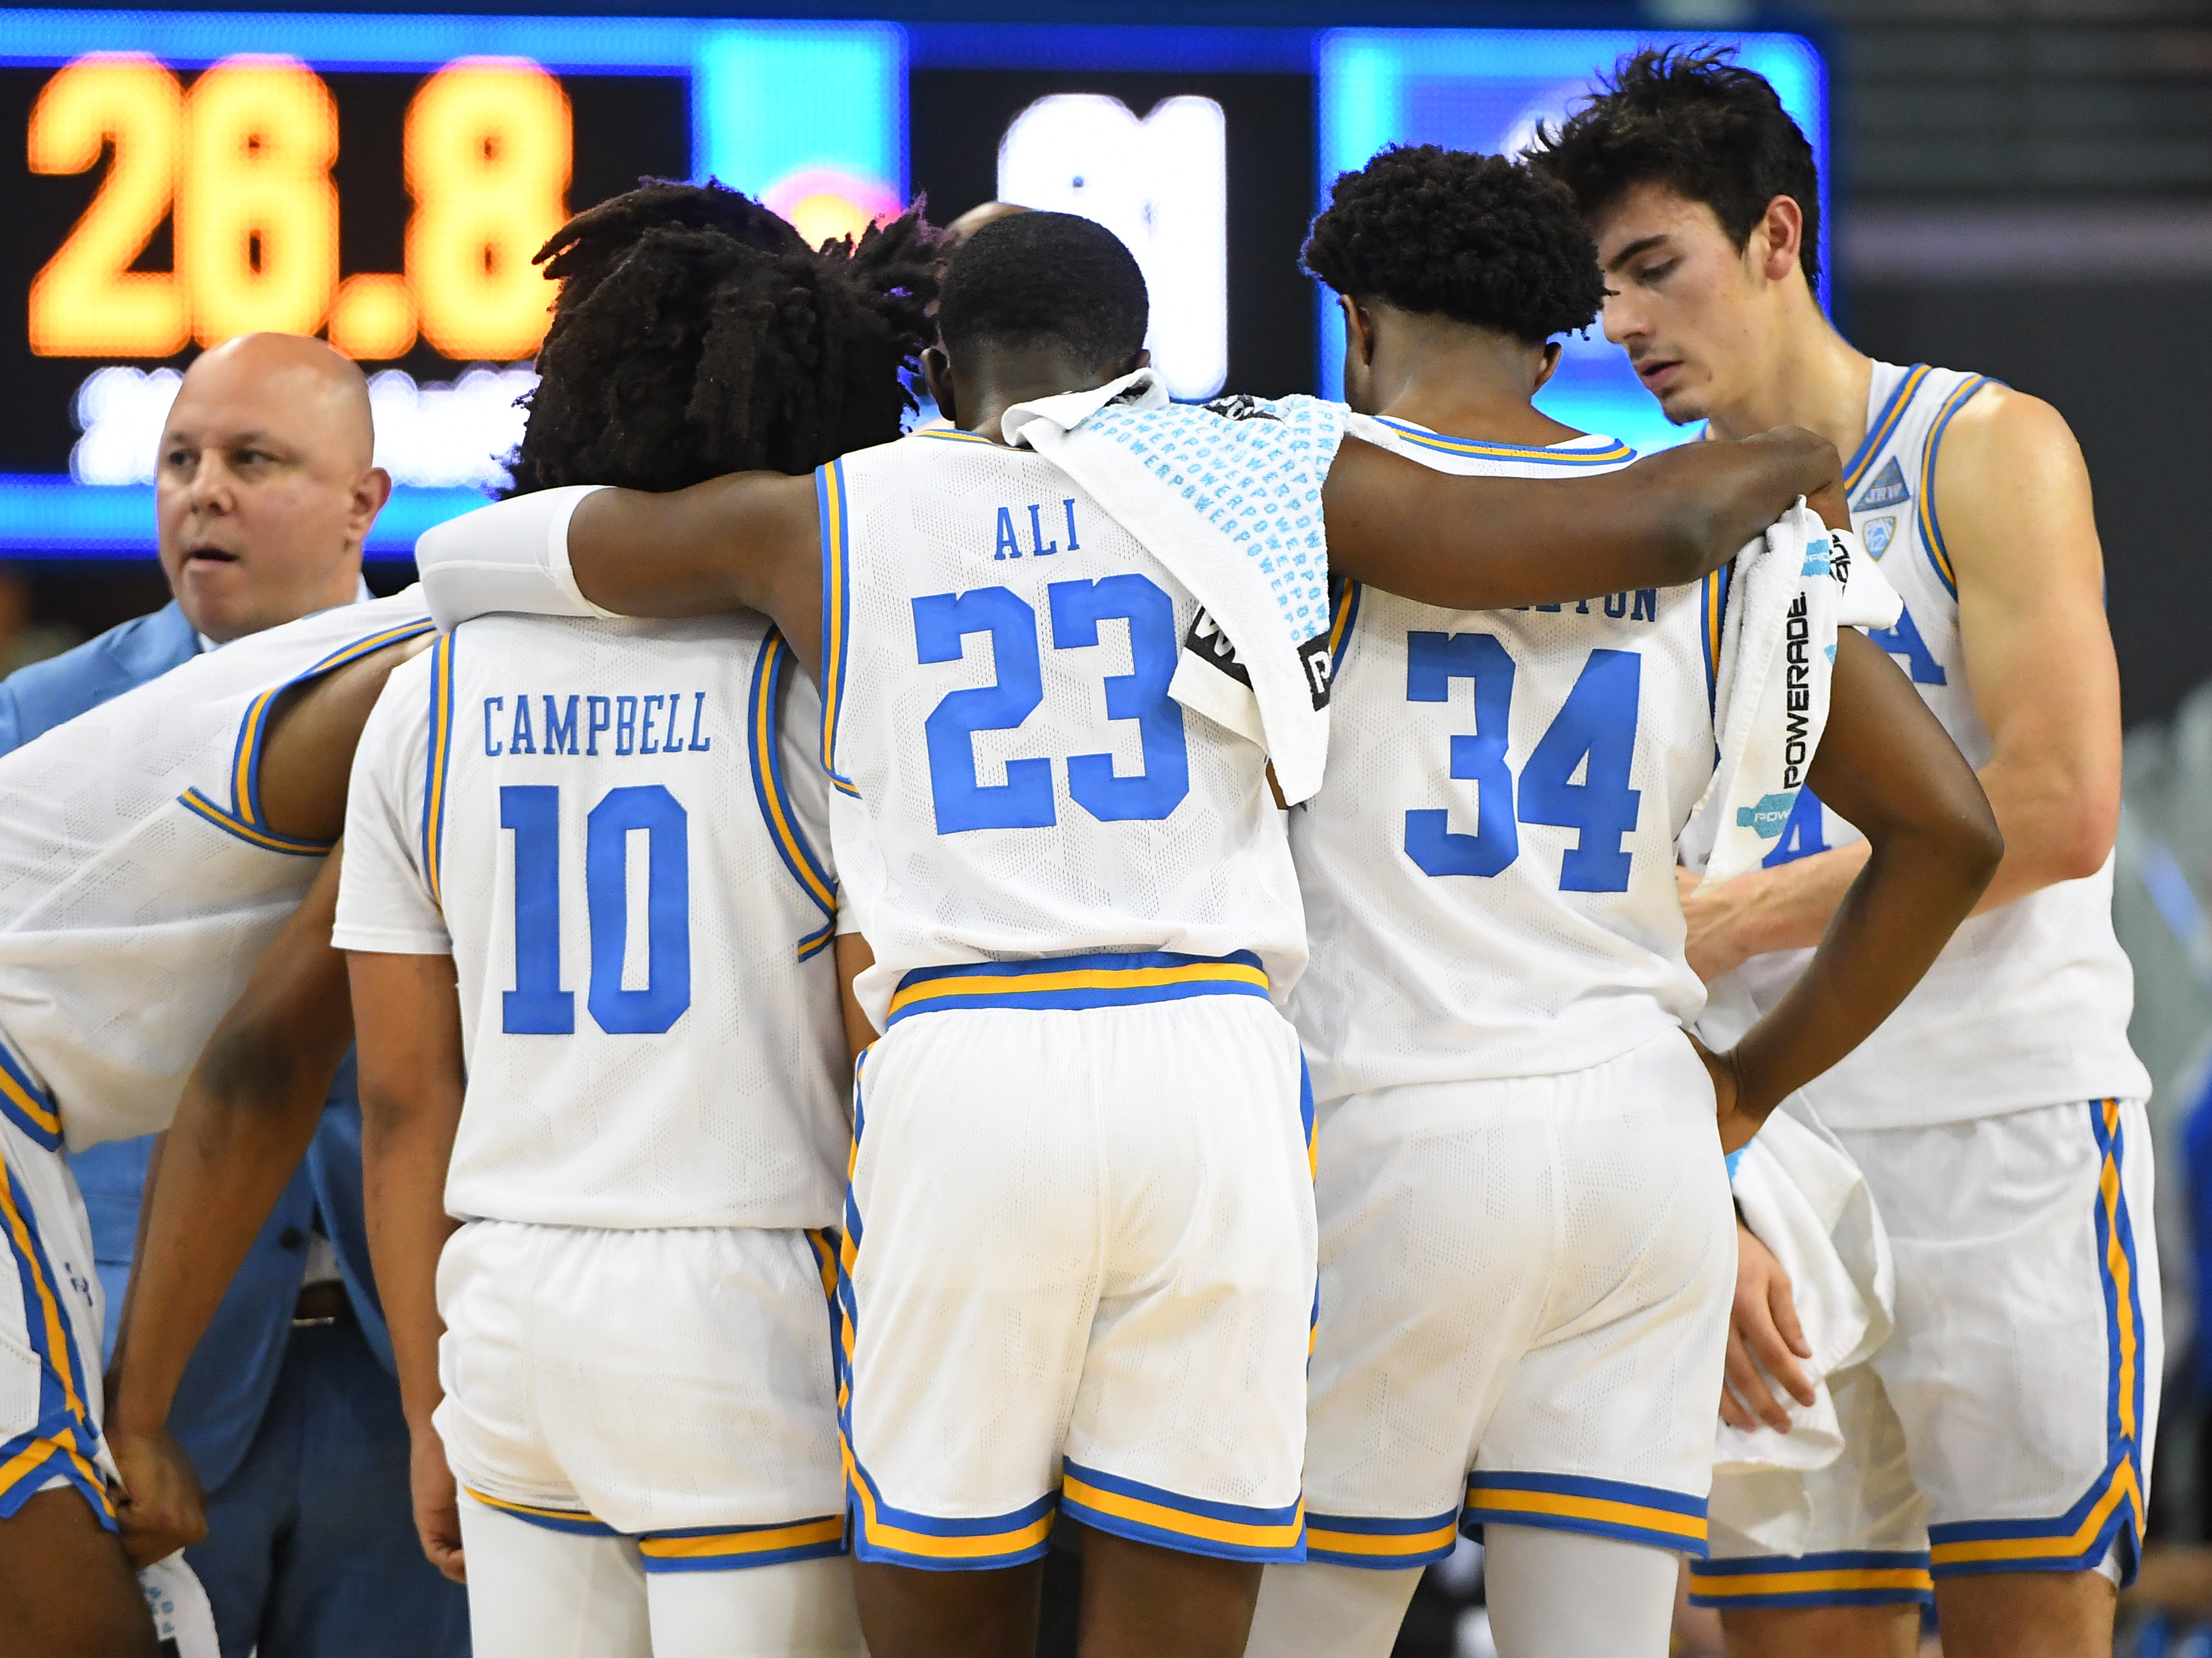 Chris Smith, Tyger Campbell, Prince Ali, David Singleton and Jaime Jaquez Jr. of the UCLA Bruins huddle during a time out during the game against the Colorado Buffaloes at Pauley Pavilion on January 30, 2020 in Los Angeles, California.